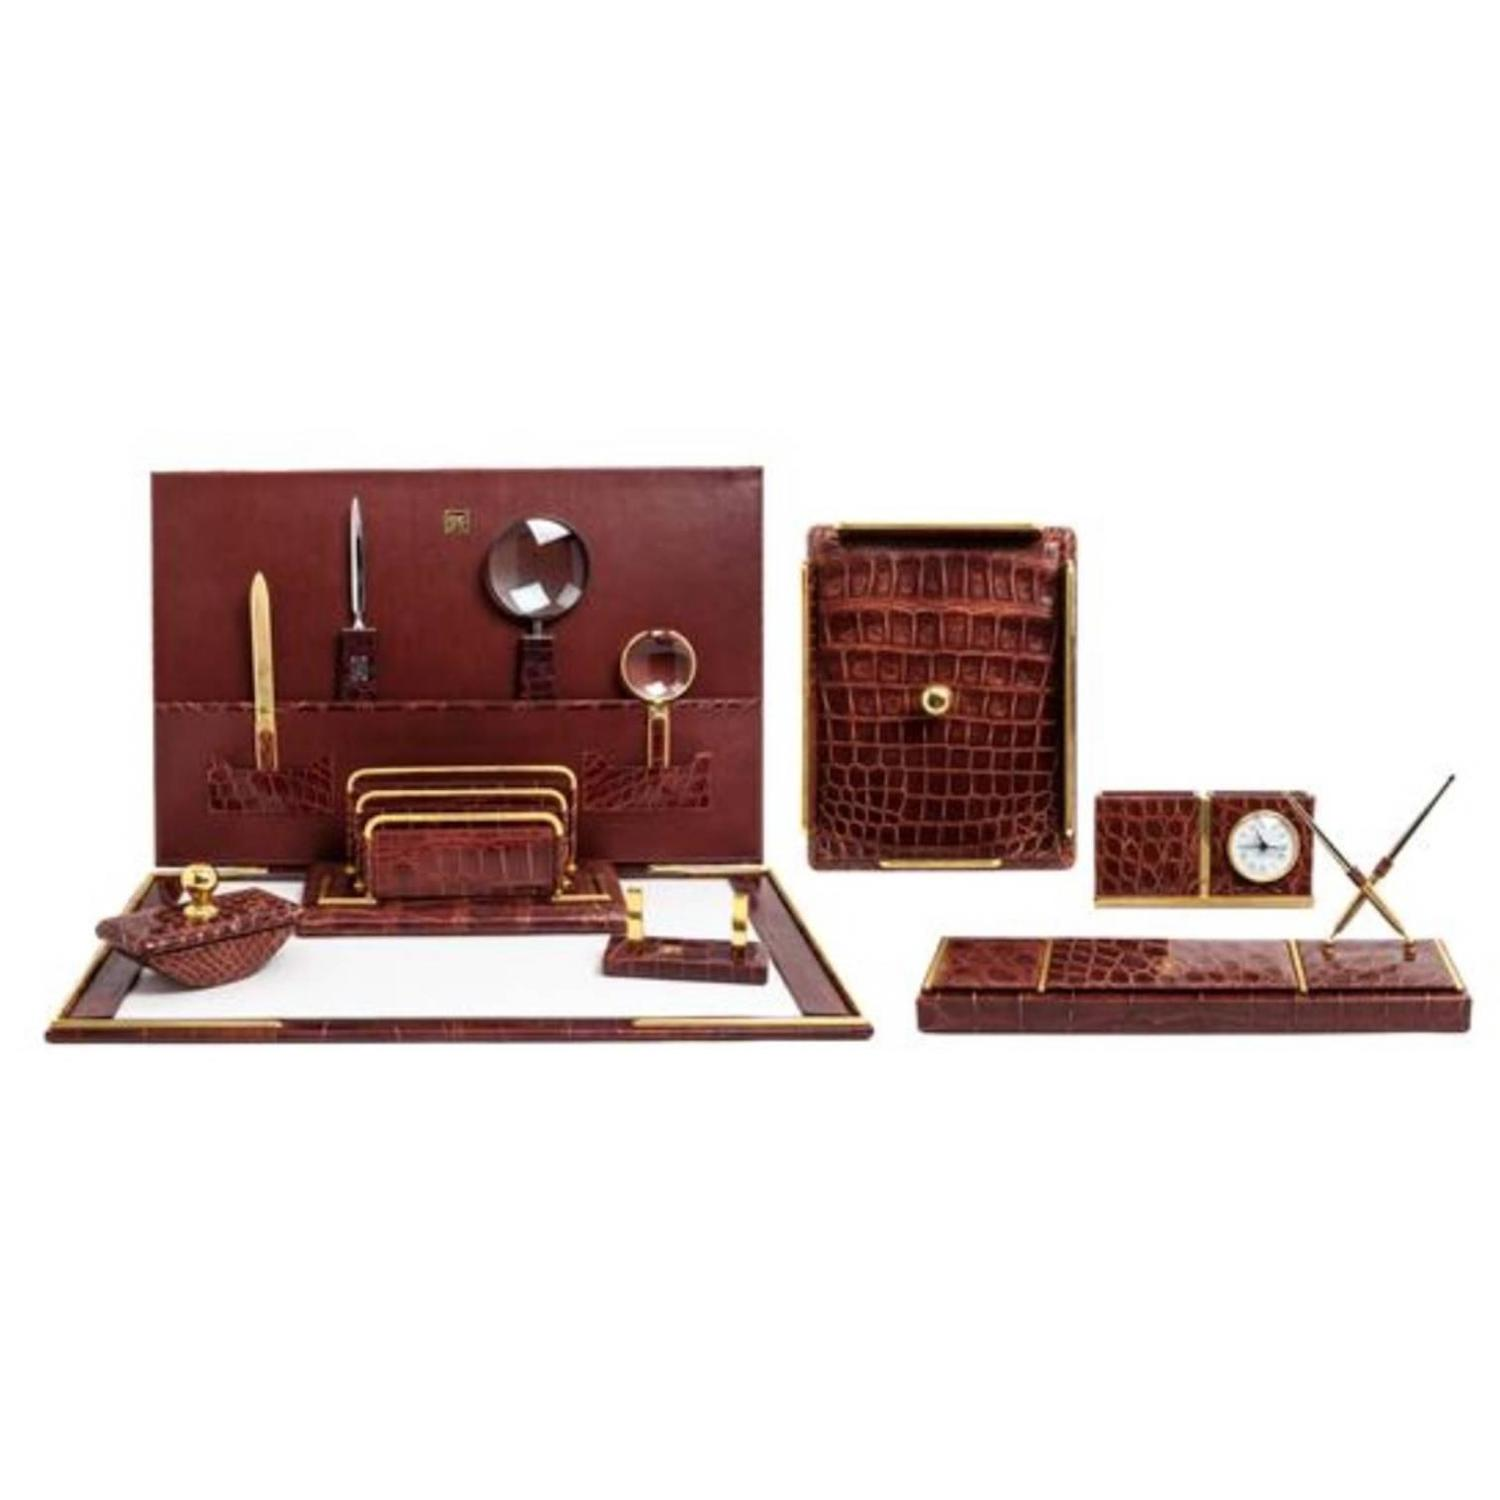 - Italian Alligator Desk Set In The Style Of Hermes For Sale At 1stdibs